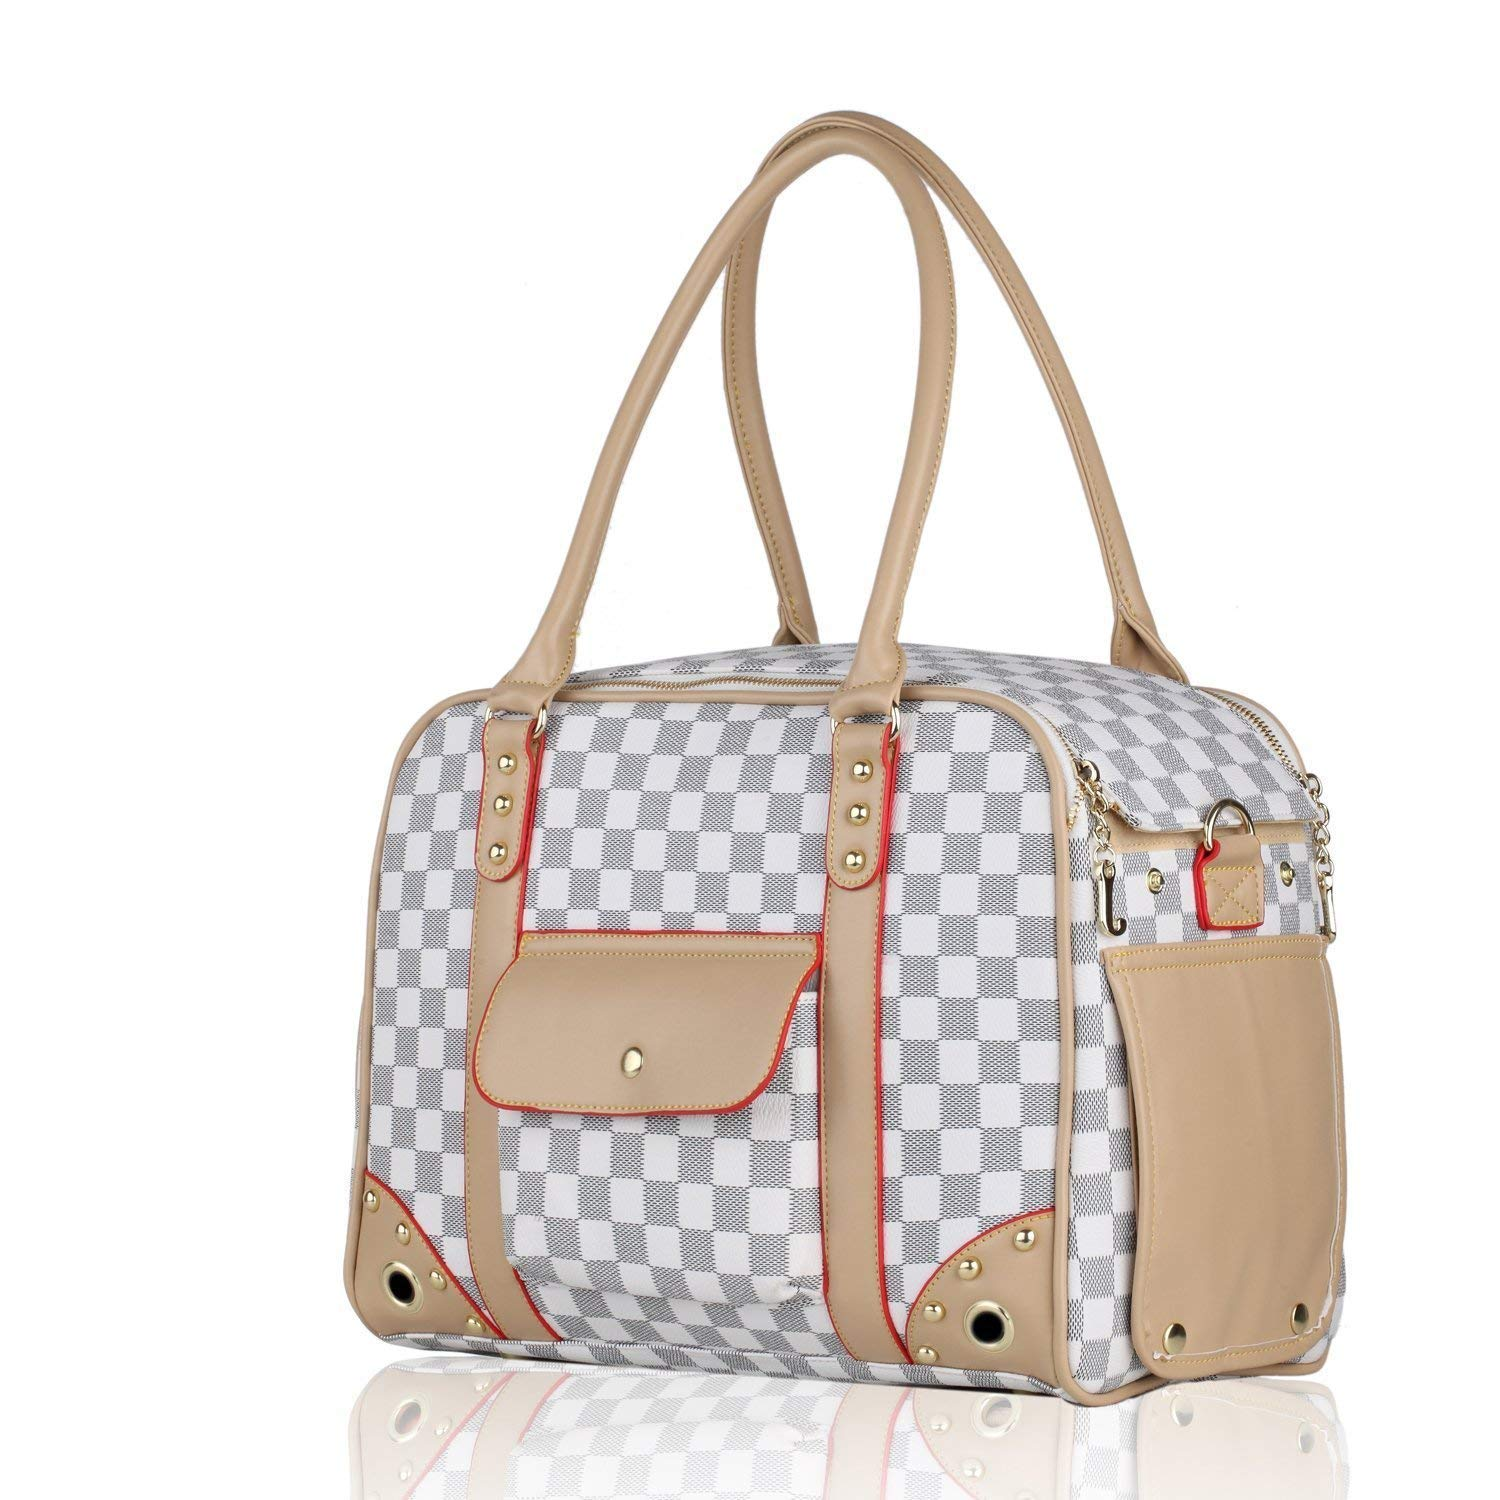 BELLAMORE GIFT Pet Carrier Bag Pomeranian Pug Chihuahua Puppy Cat Yorkie Discreet Tote BELLAMORE GIFT LIMITED